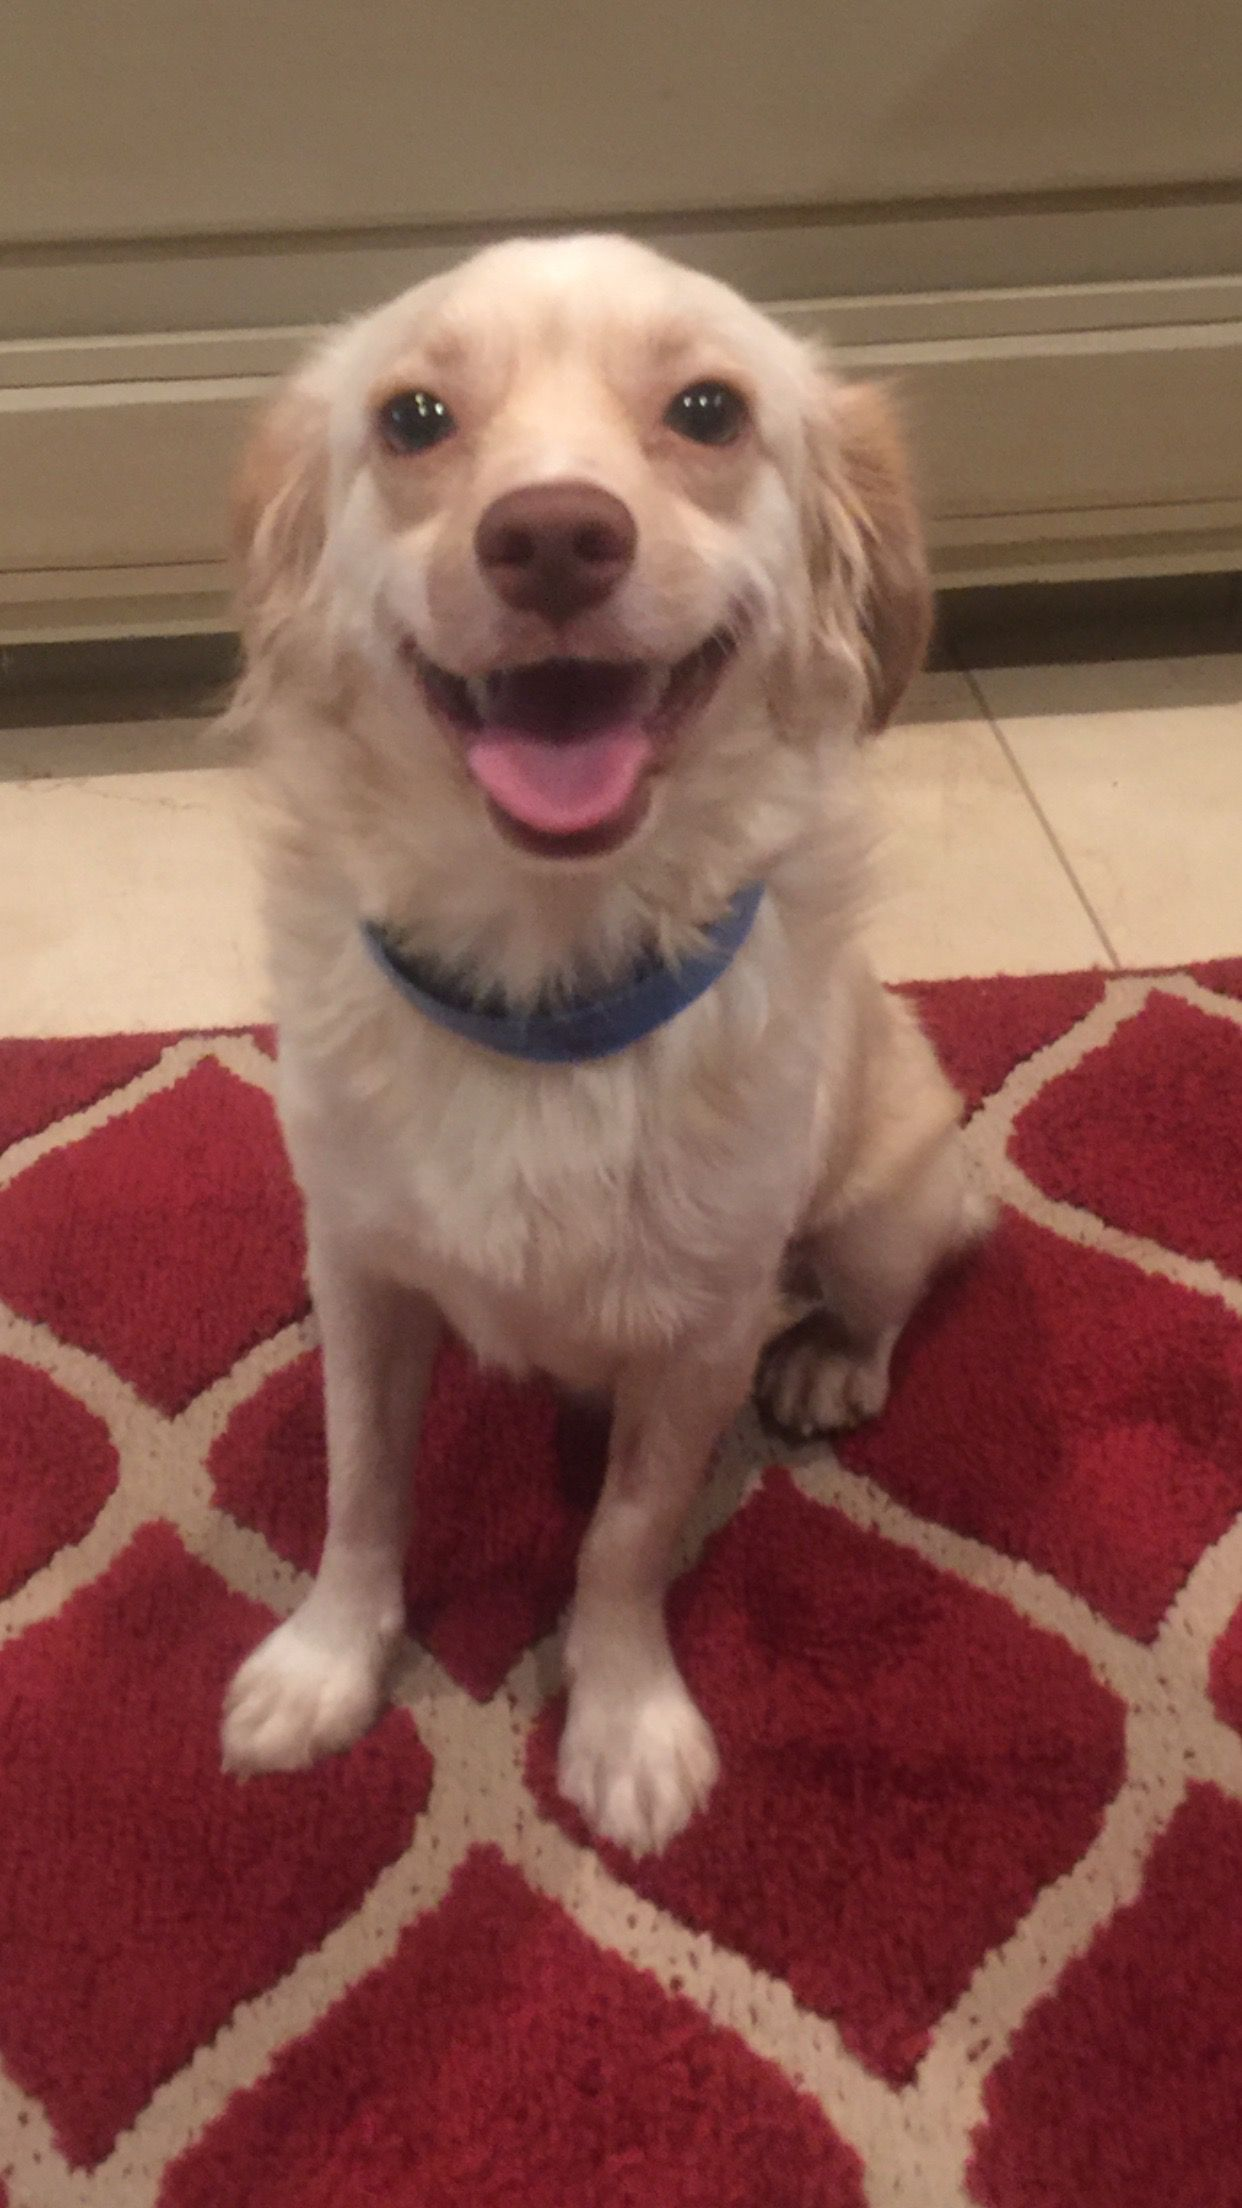 Chilier dog for Adoption in Fort Worth, TX. ADN703700 on